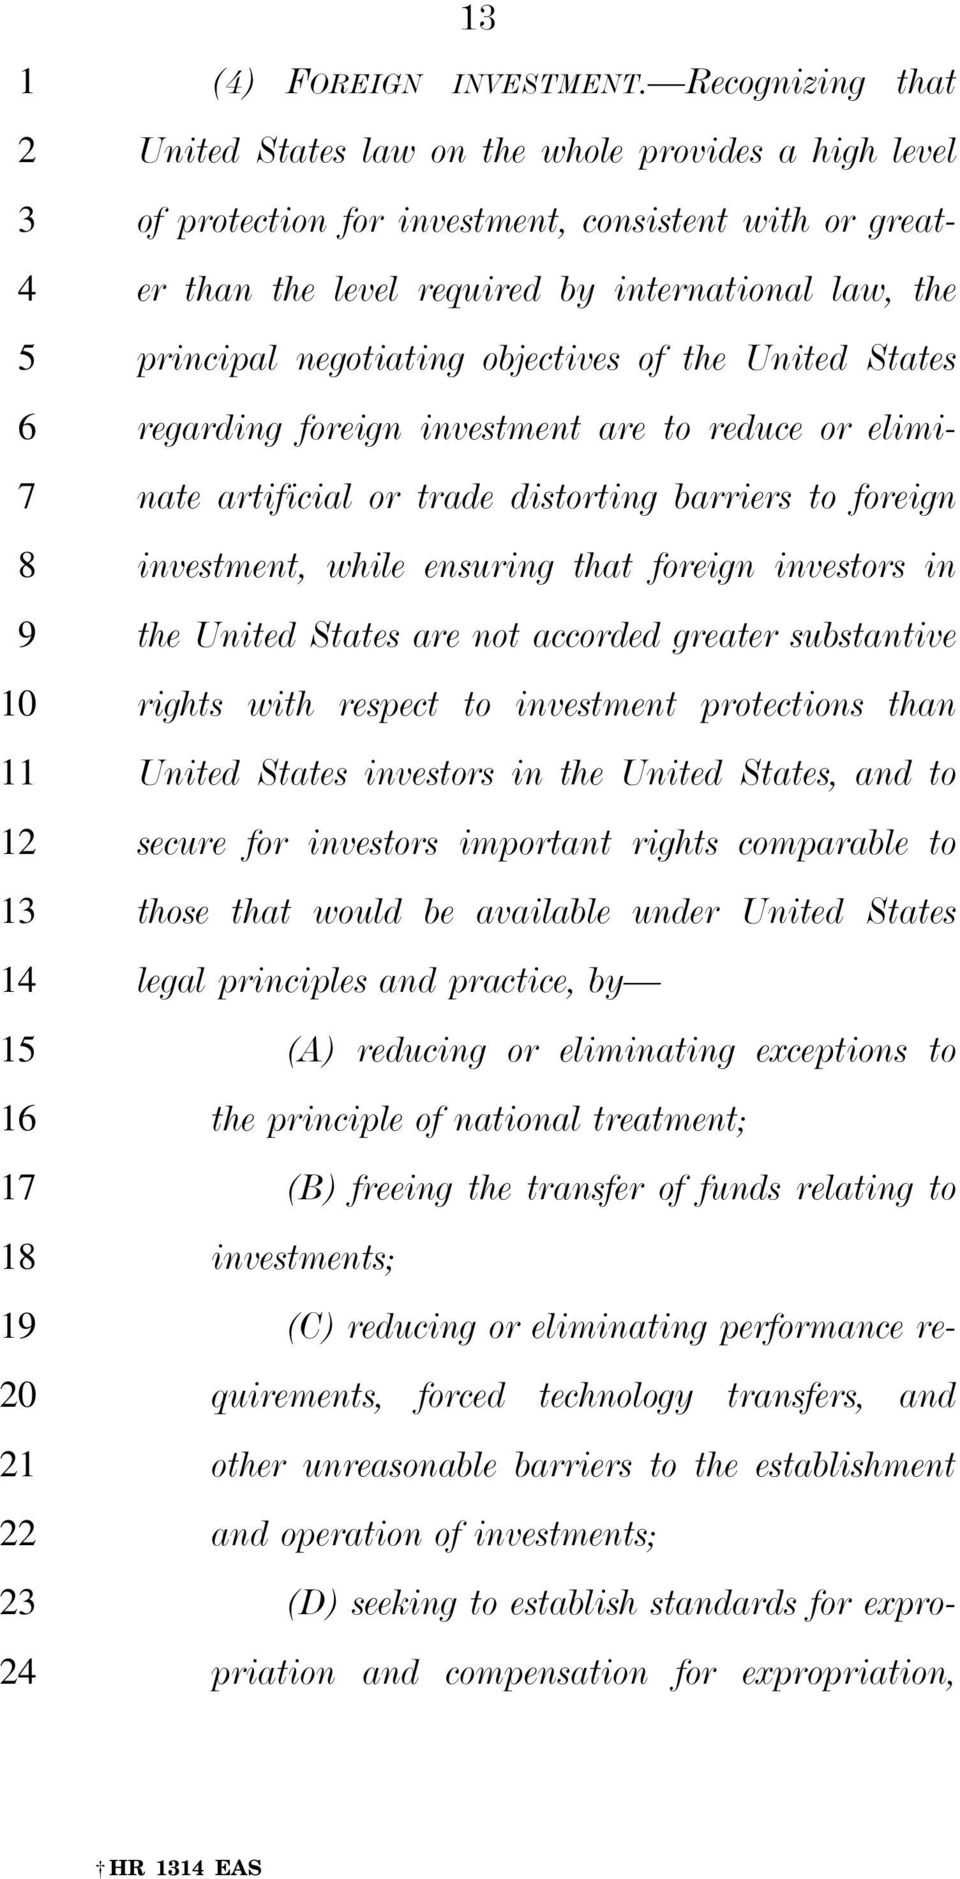 objectives of the United States regarding foreign investment are to reduce or eliminate artificial or trade distorting barriers to foreign investment, while ensuring that foreign investors in the